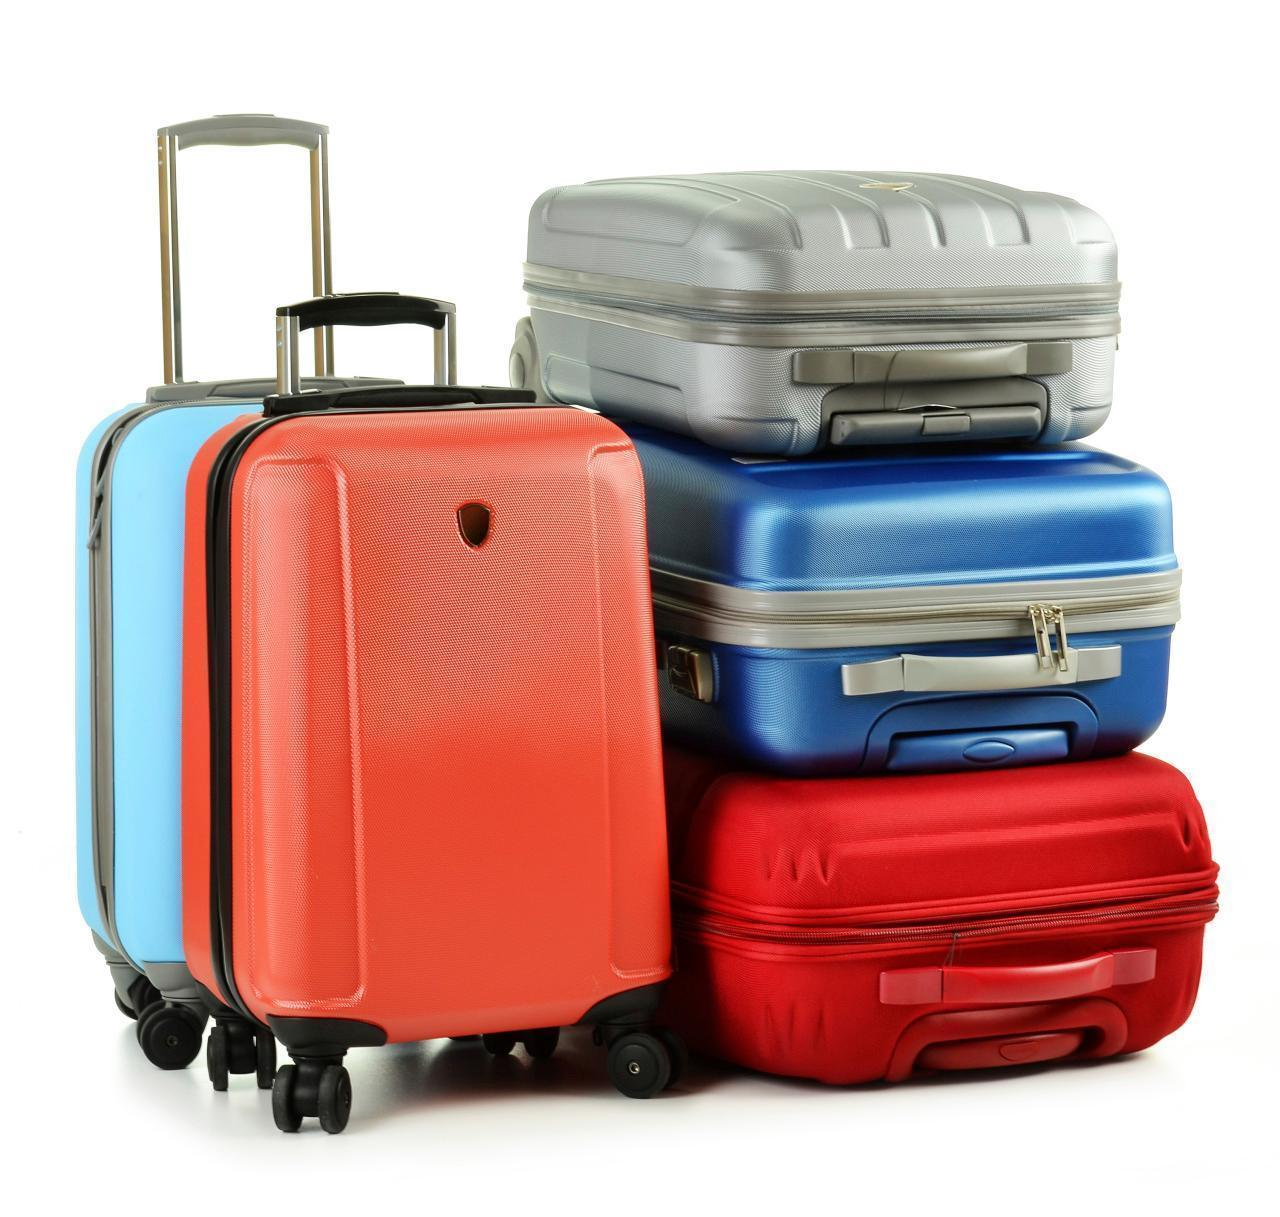 things to know before buying luggage on black friday -